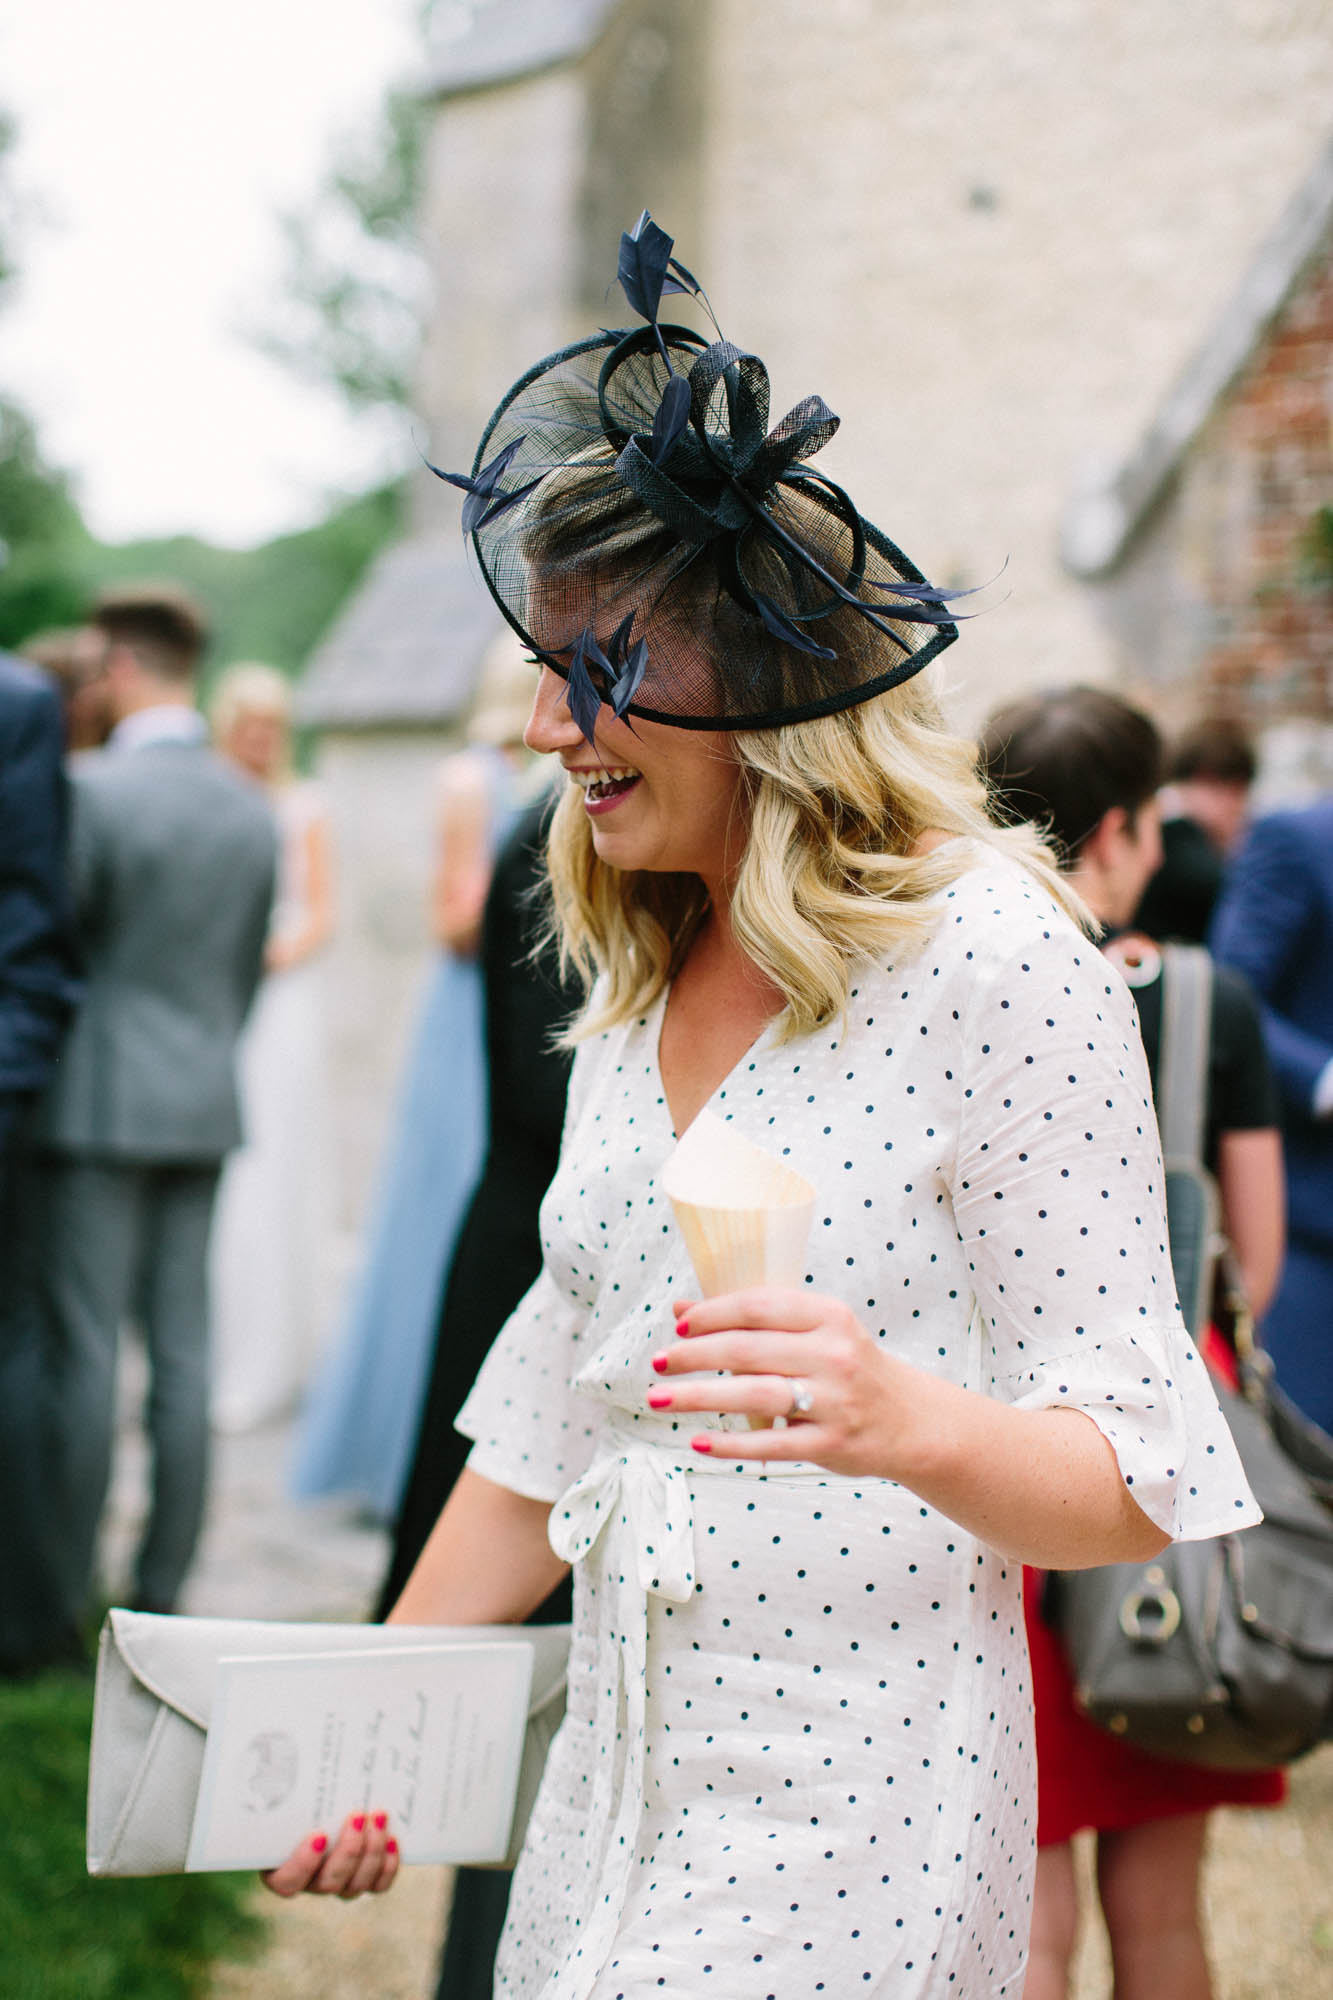 Wedding guests laughing outside church wearing black hat